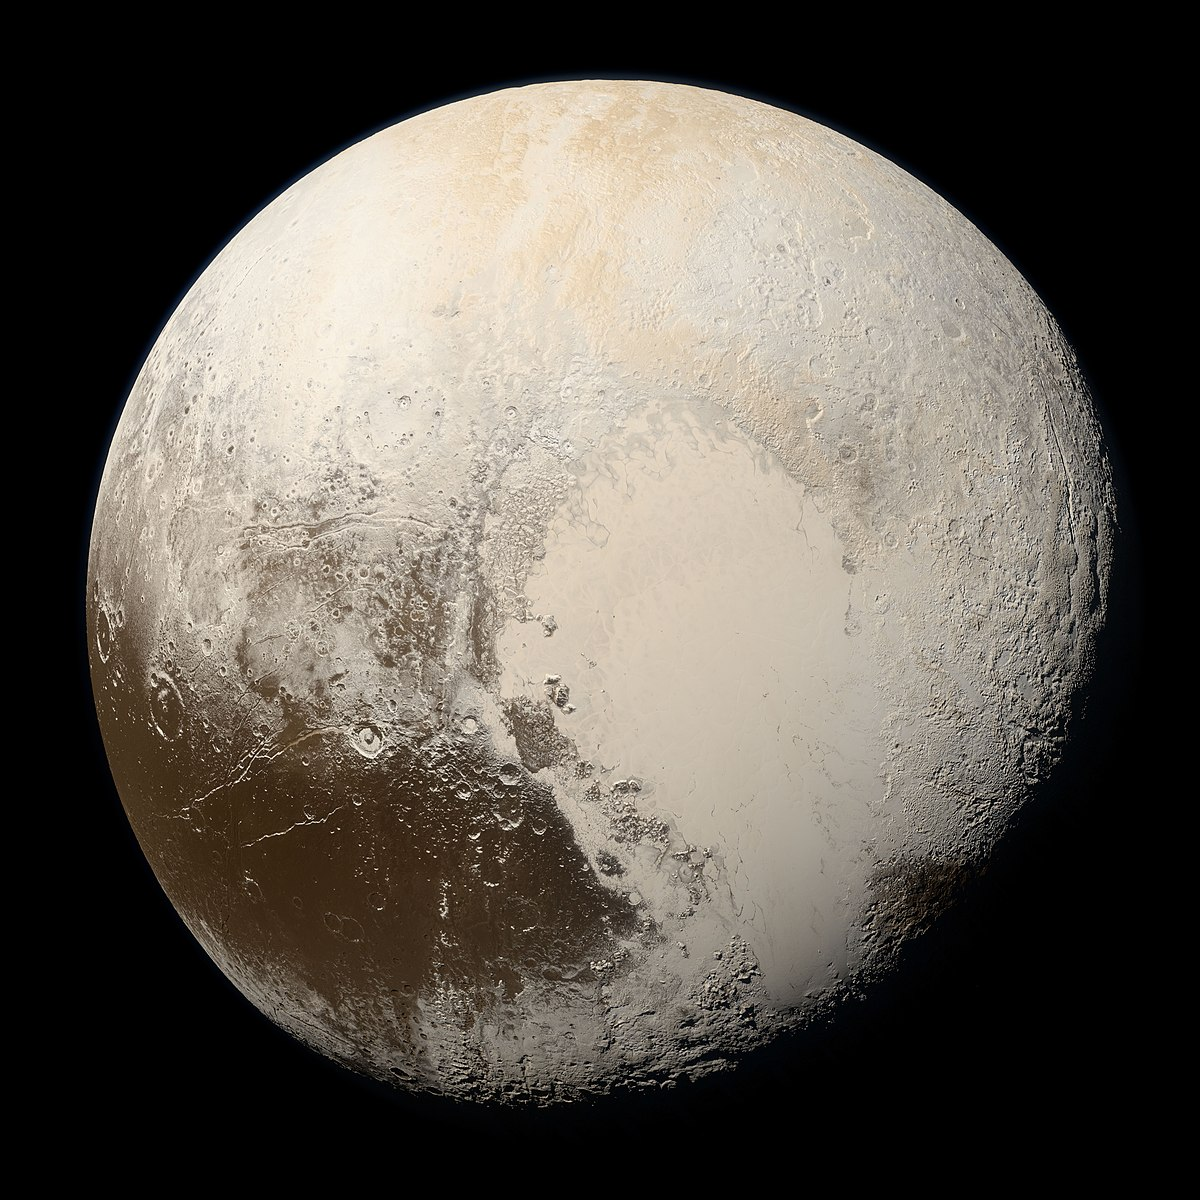 [Image: 1200px-Pluto_in_True_Color_-_High-Res.jpg]